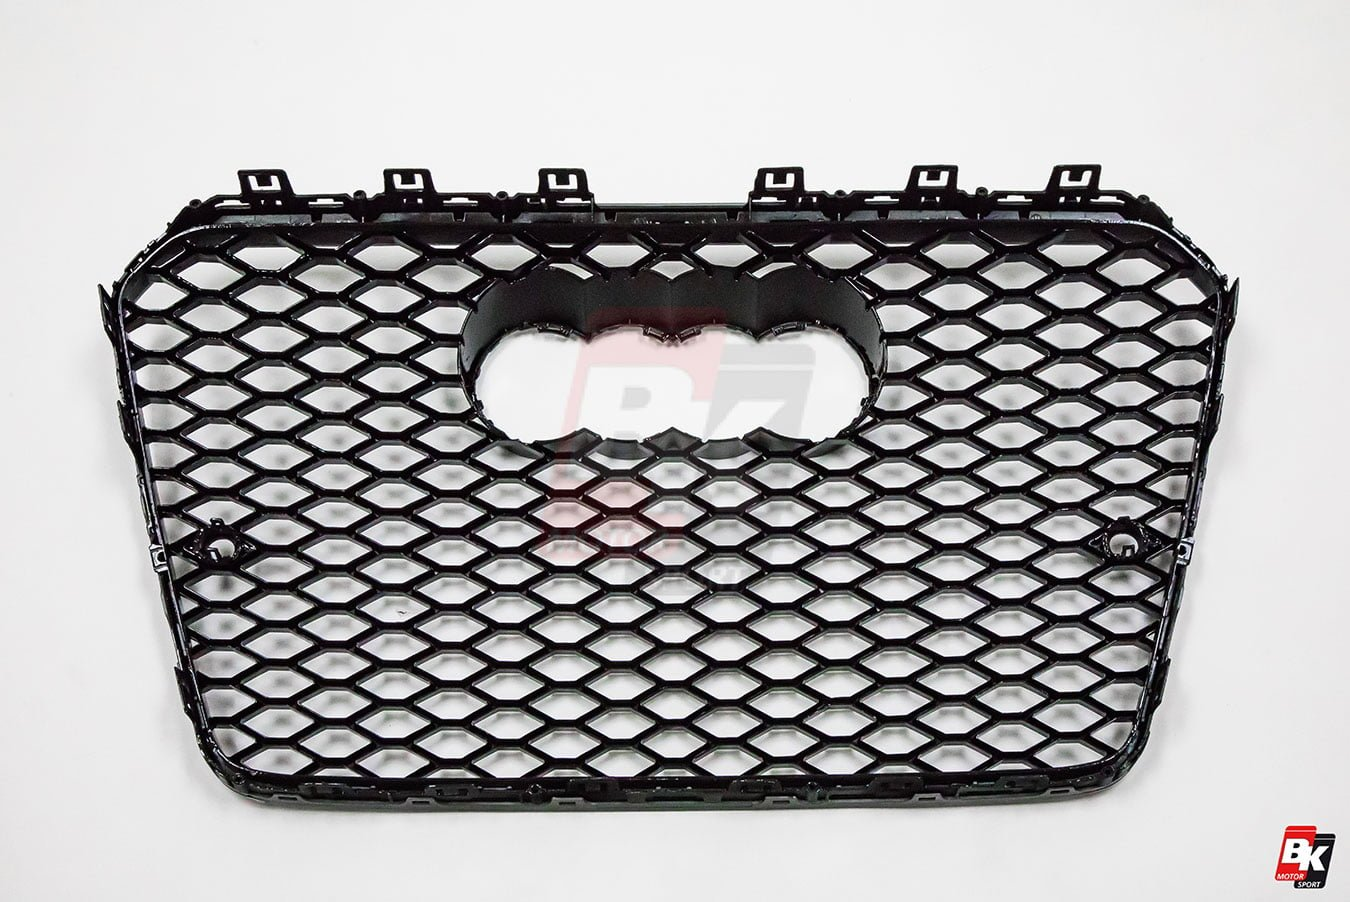 BKM Front Grille with Black Frame (RS5 Style), fits Audi A5/S5 B8.5